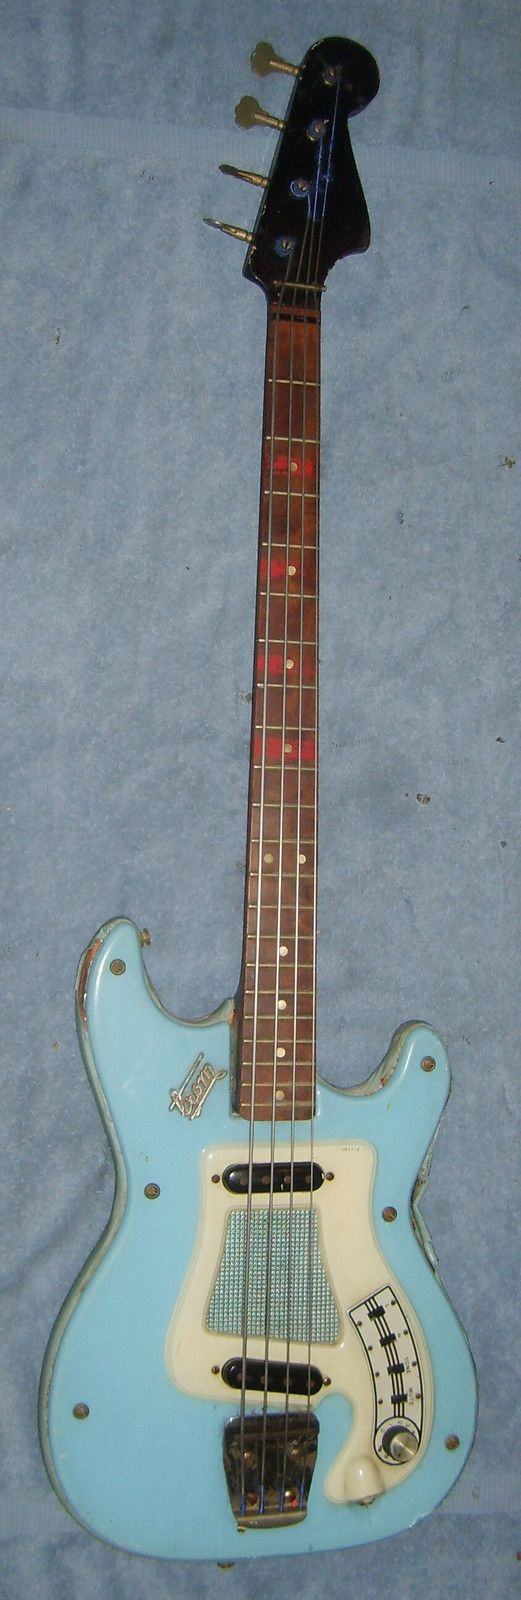 Vintage Early '60s Hagstrom BLUE Bass Guitar ! Round Pole PUs- I'd say different